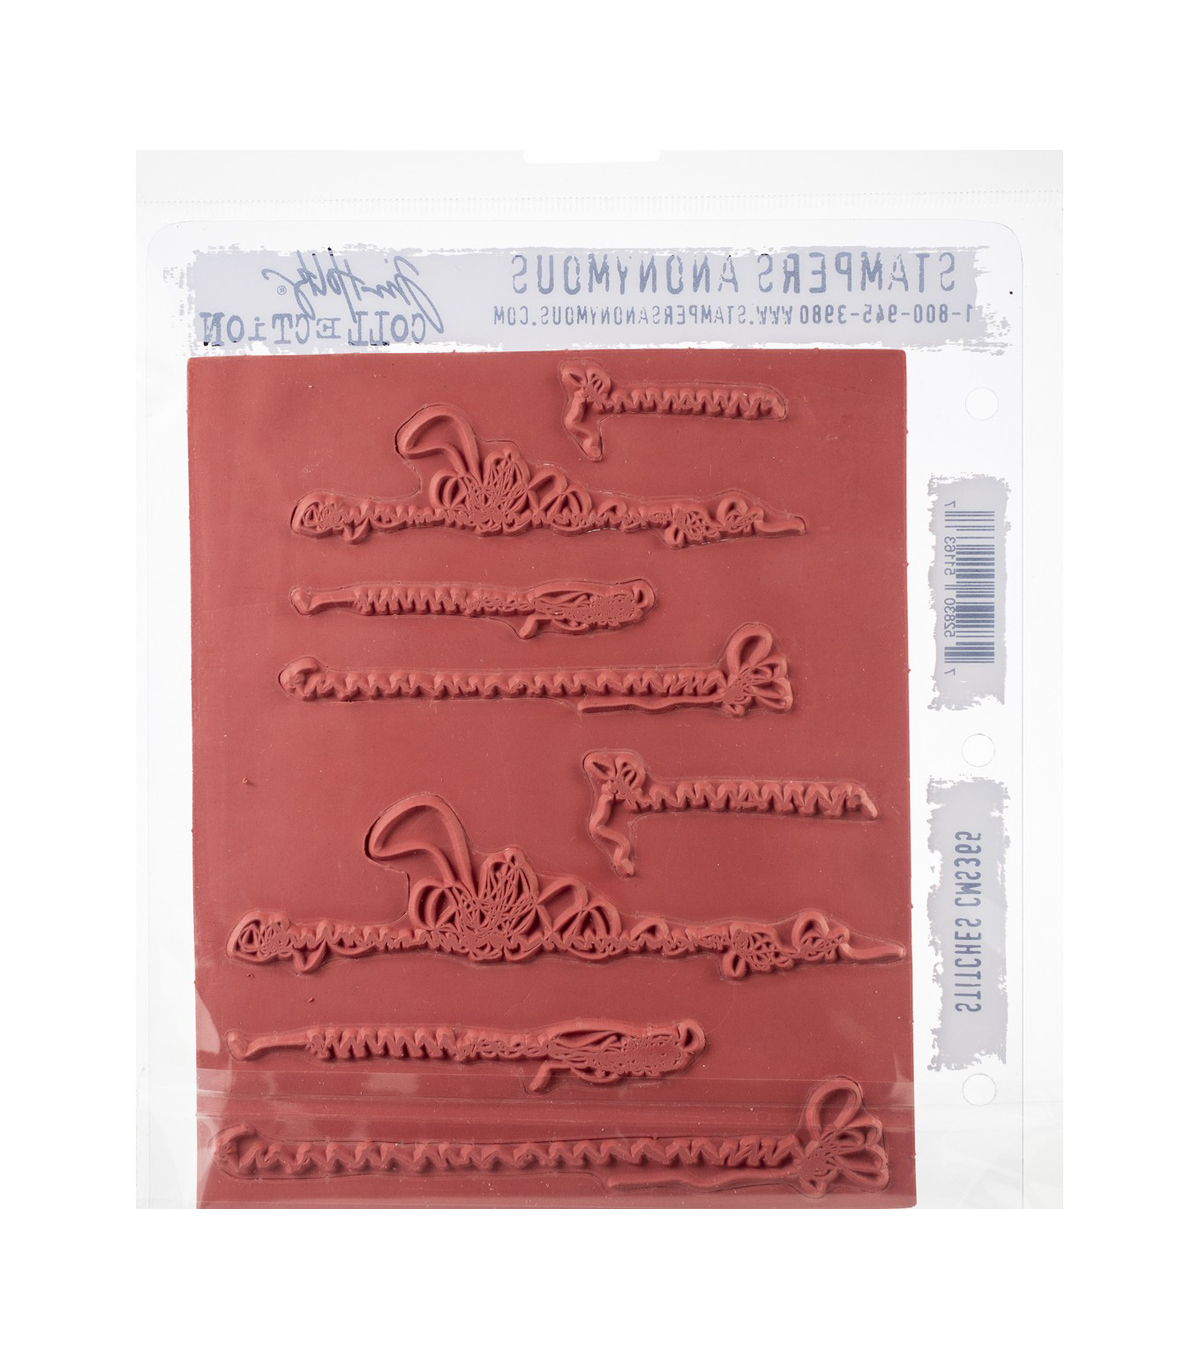 Tim Holtz Cling Stamps 7\u0027\u0027X8.5\u0027\u0027-Stitches